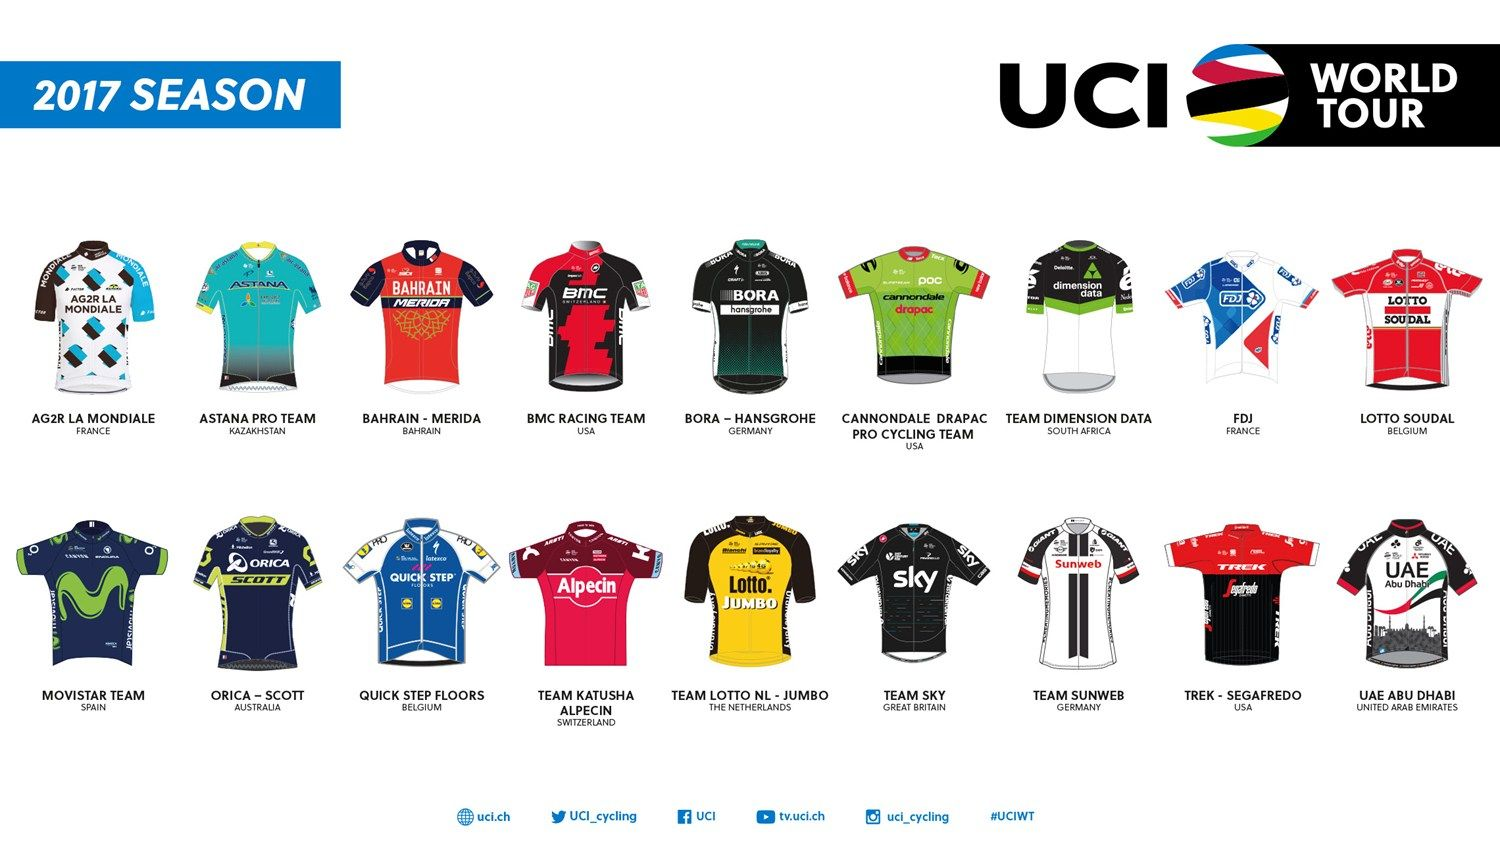 Uci World Tour Teams